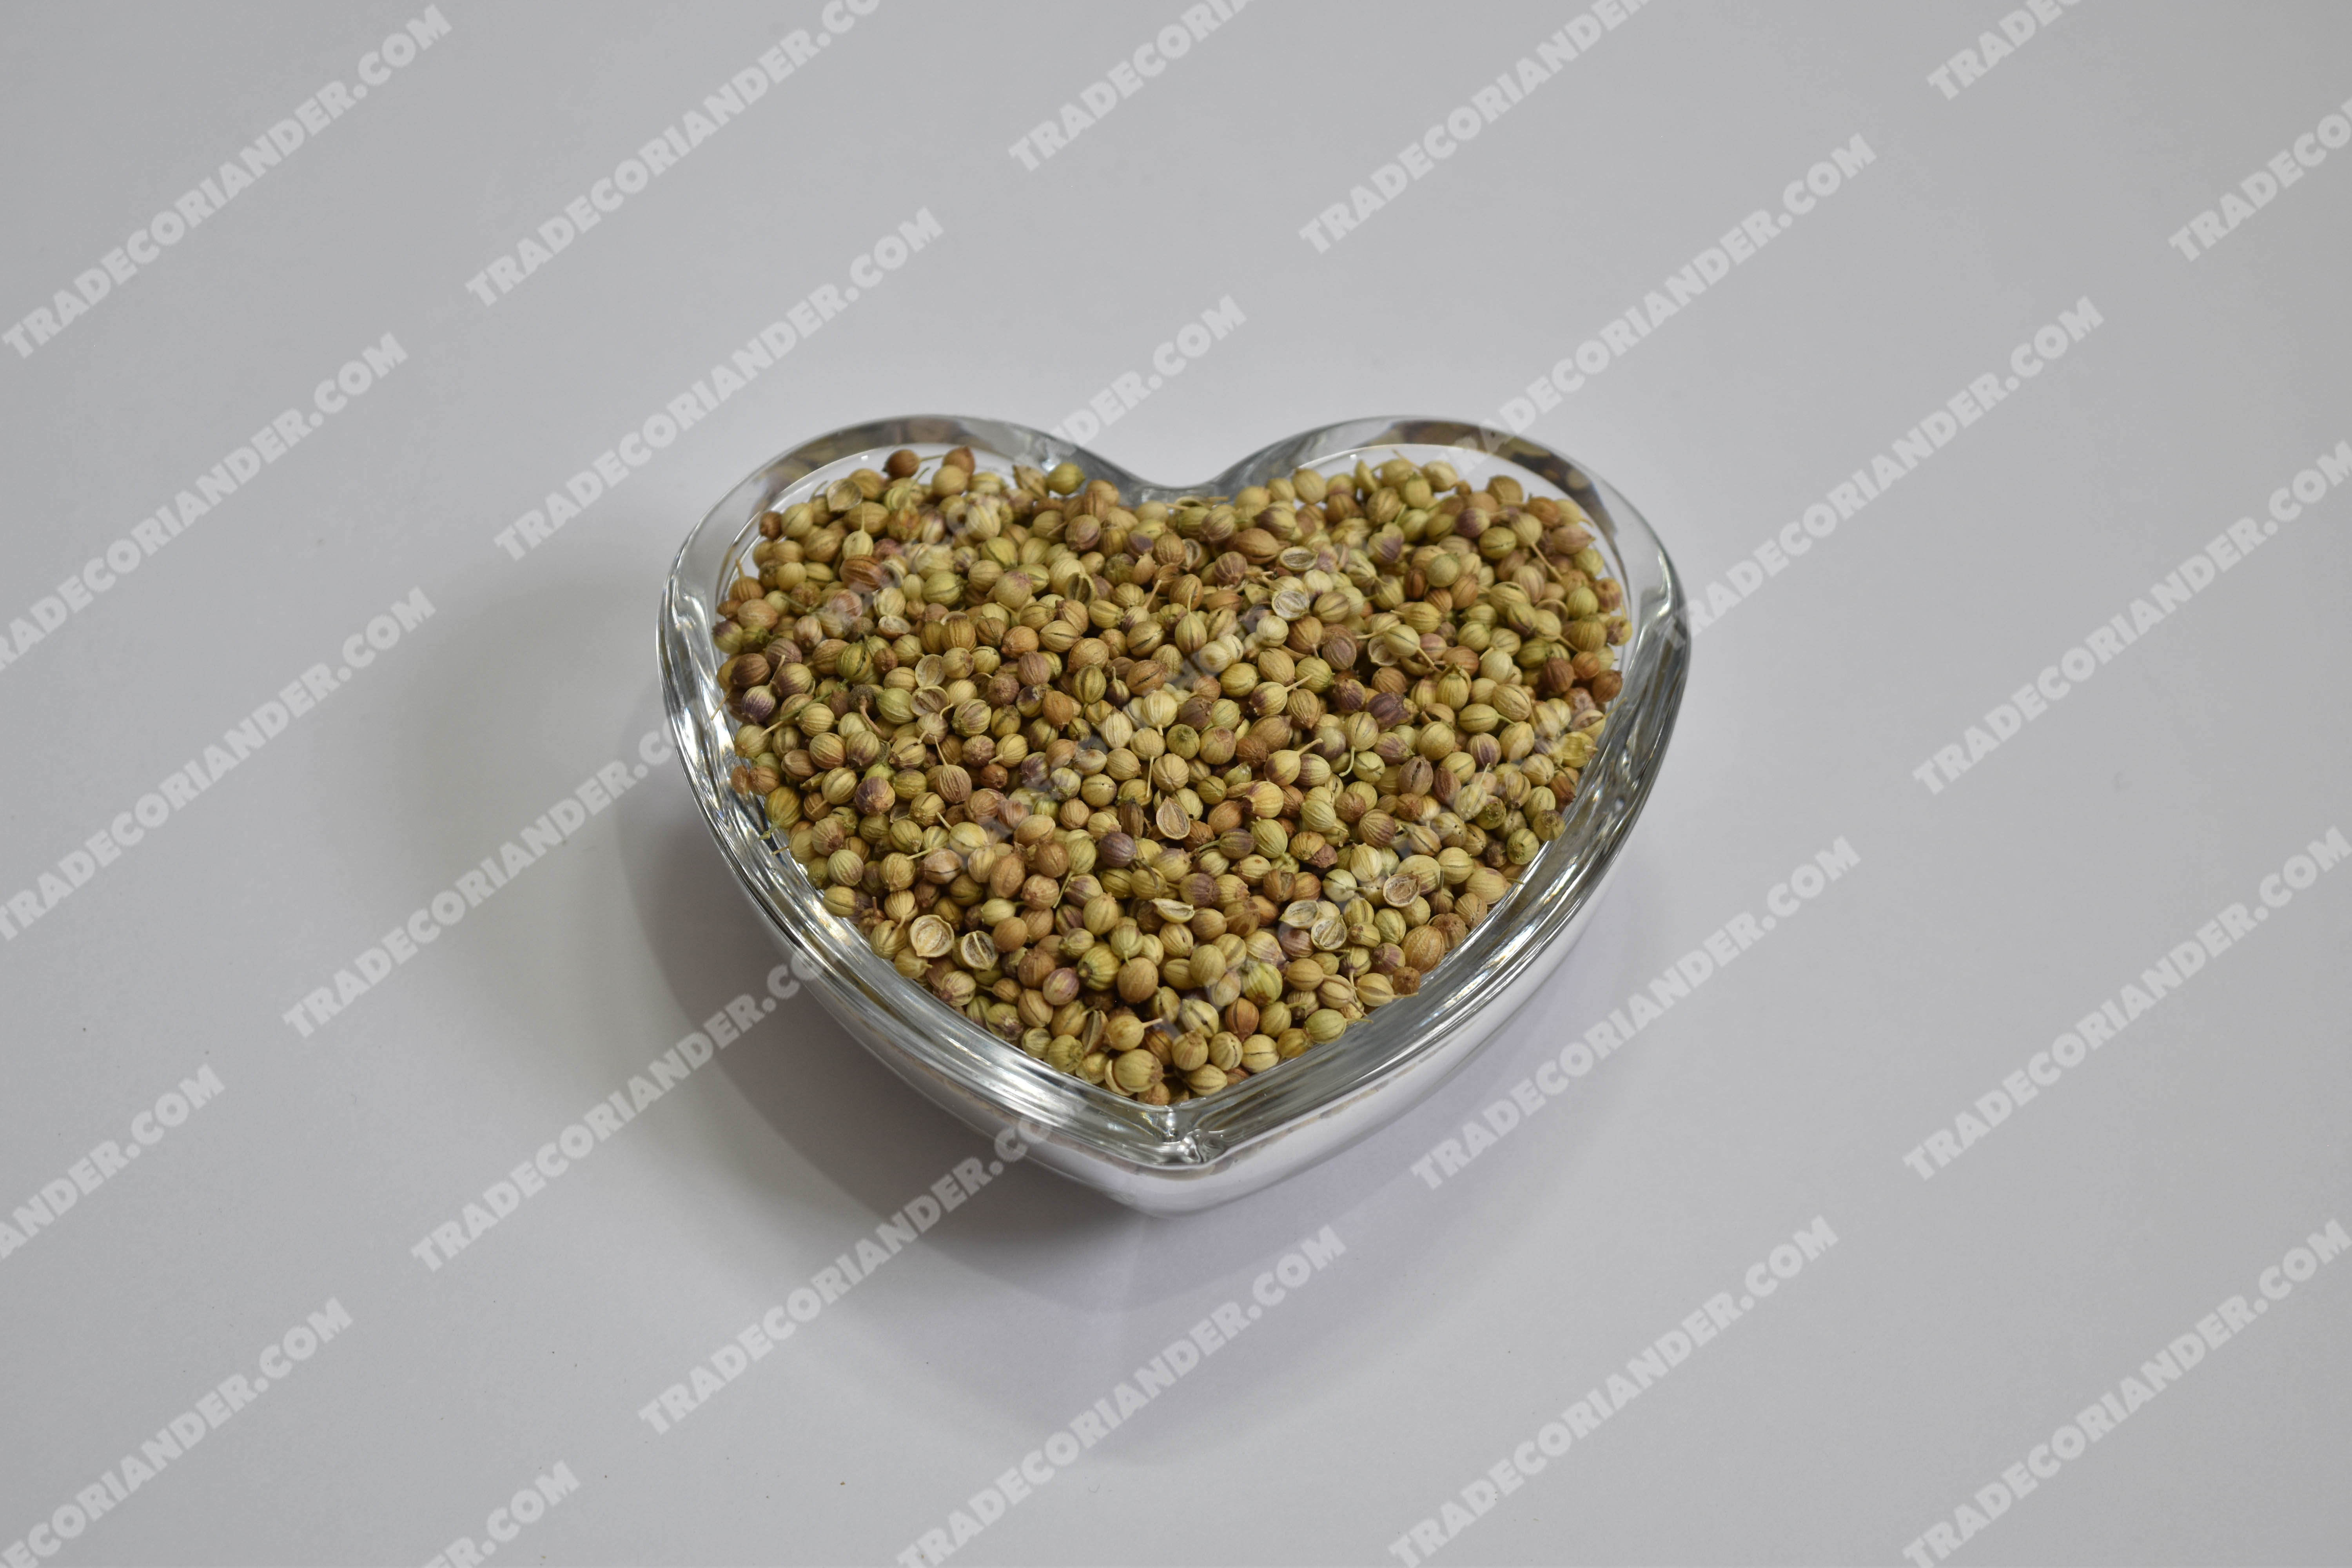 Is the Latest Coriander seed rate cheaper than before?